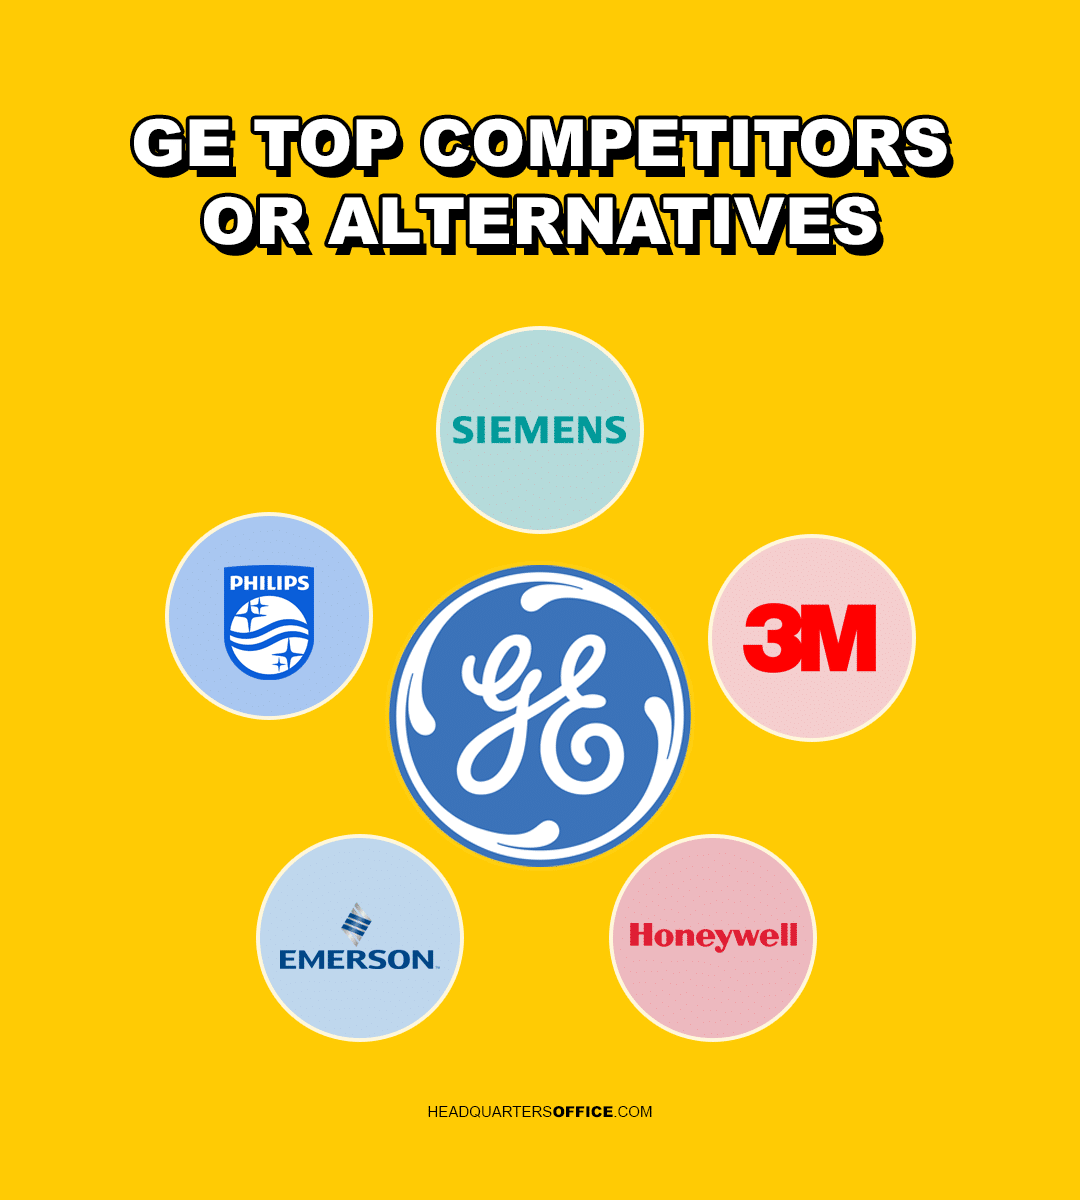 general electric ge top competitors or alternatives